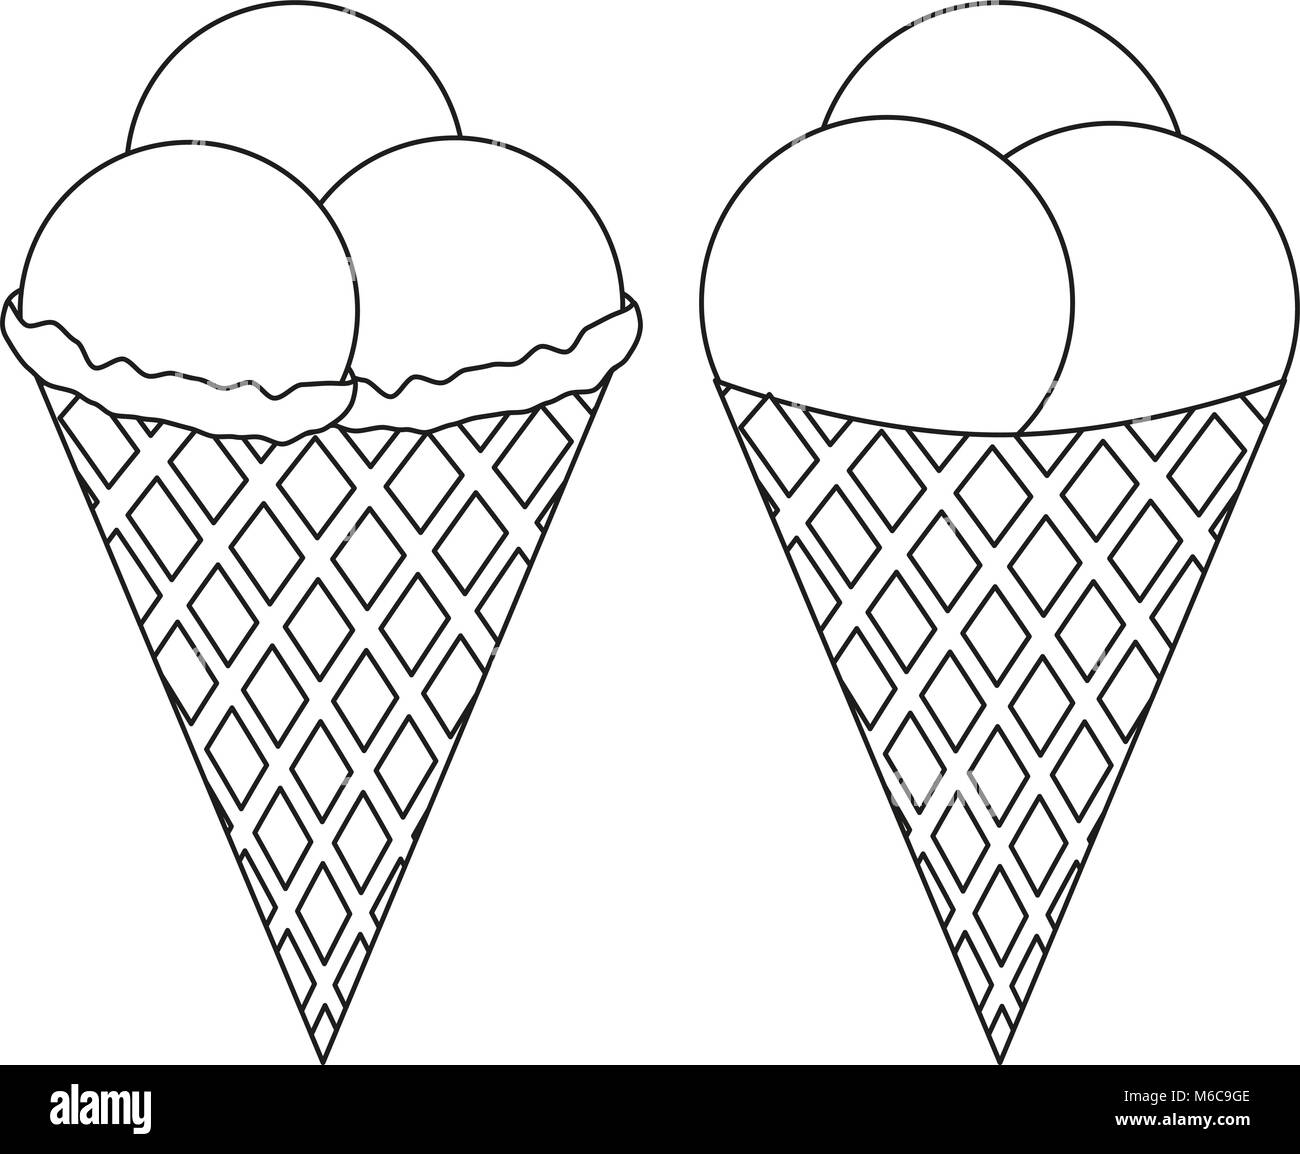 Double Portion Ice Cream Cone Icon Isolated On White Stock Photo ... for Ice  Cream Cone Clipart Black And Whit…   Clipart black and white, Old map, Ice  cream images